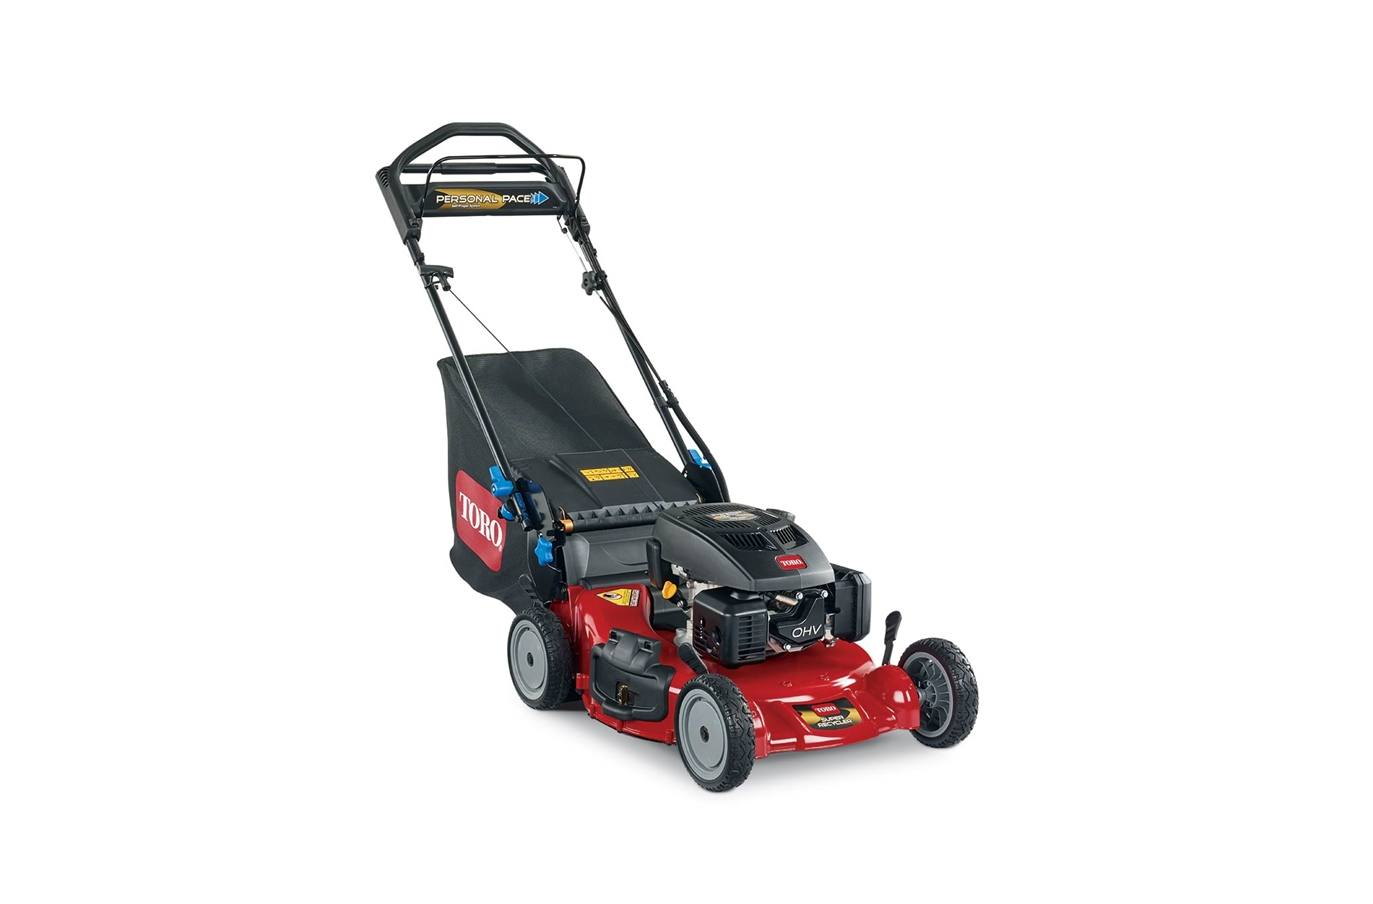 Inventory from Toro Accurate Lawn & Garden Winnipeg, MB (204